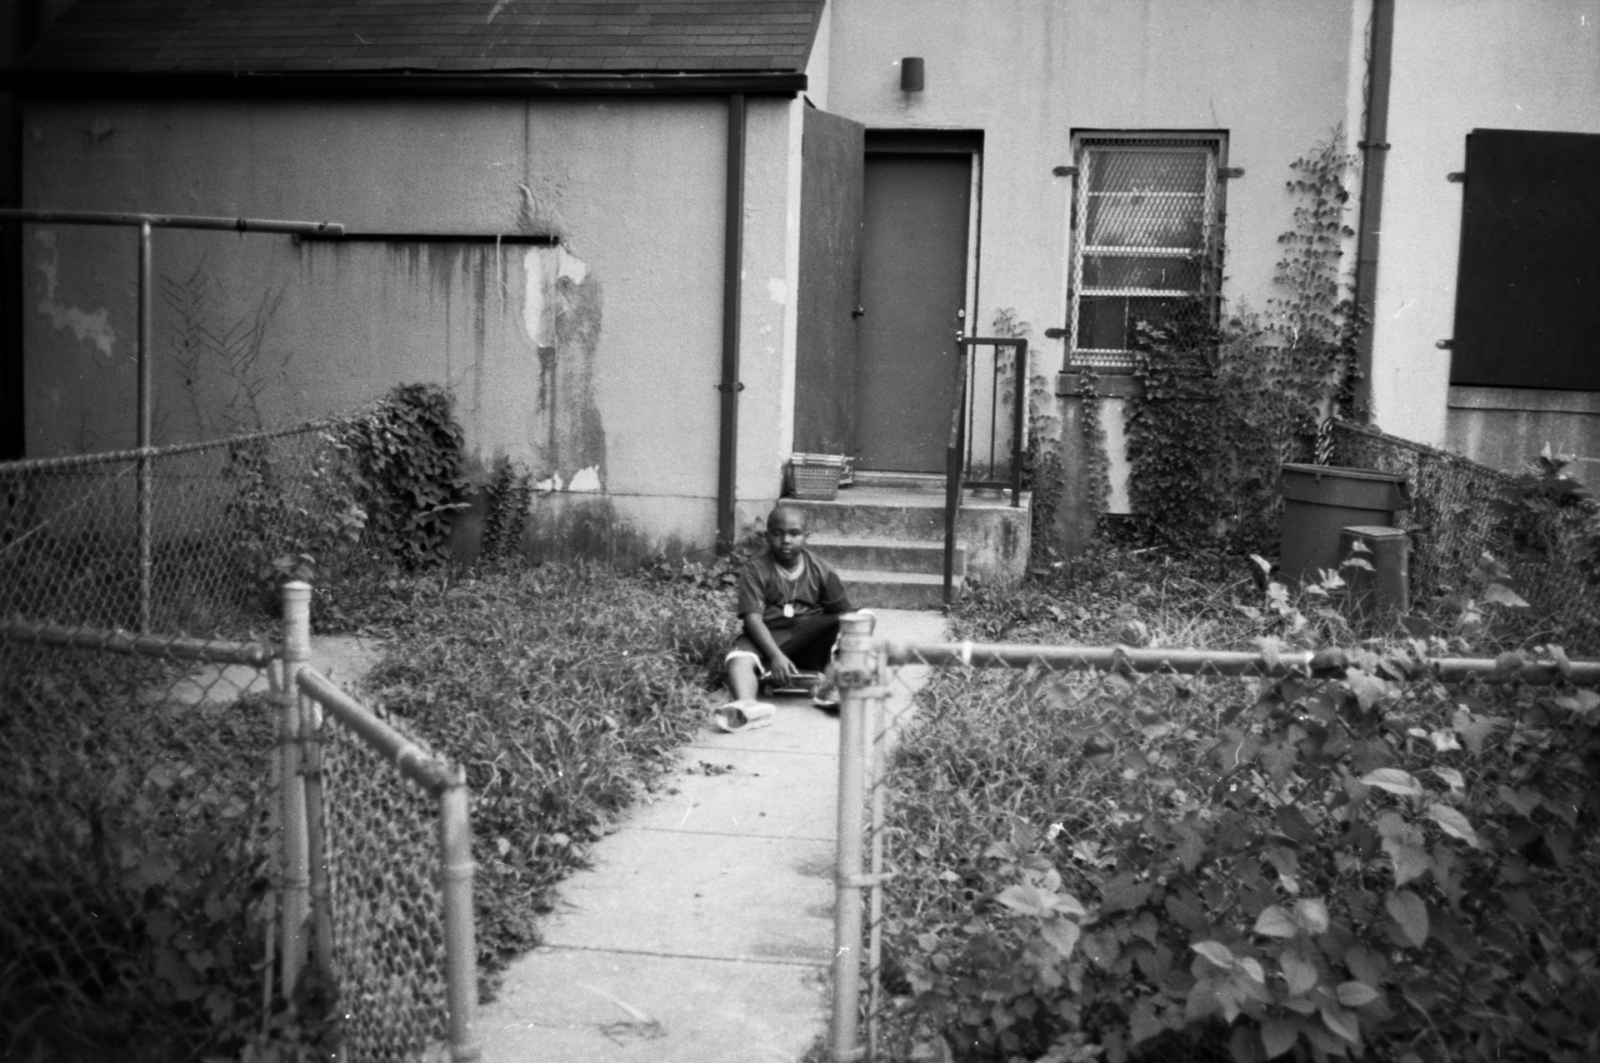 "Zion Archer sits on a skateboard in his backyard in Barry Farm August 2017.  ""Barry Farm is not really a good place because they really shoot up a lot, they do bad things, and people rob people's stuff, like they took my scooter. That's why I don't like Barry Farms. The only thing I like is when I play with my friends,"" says Archer."